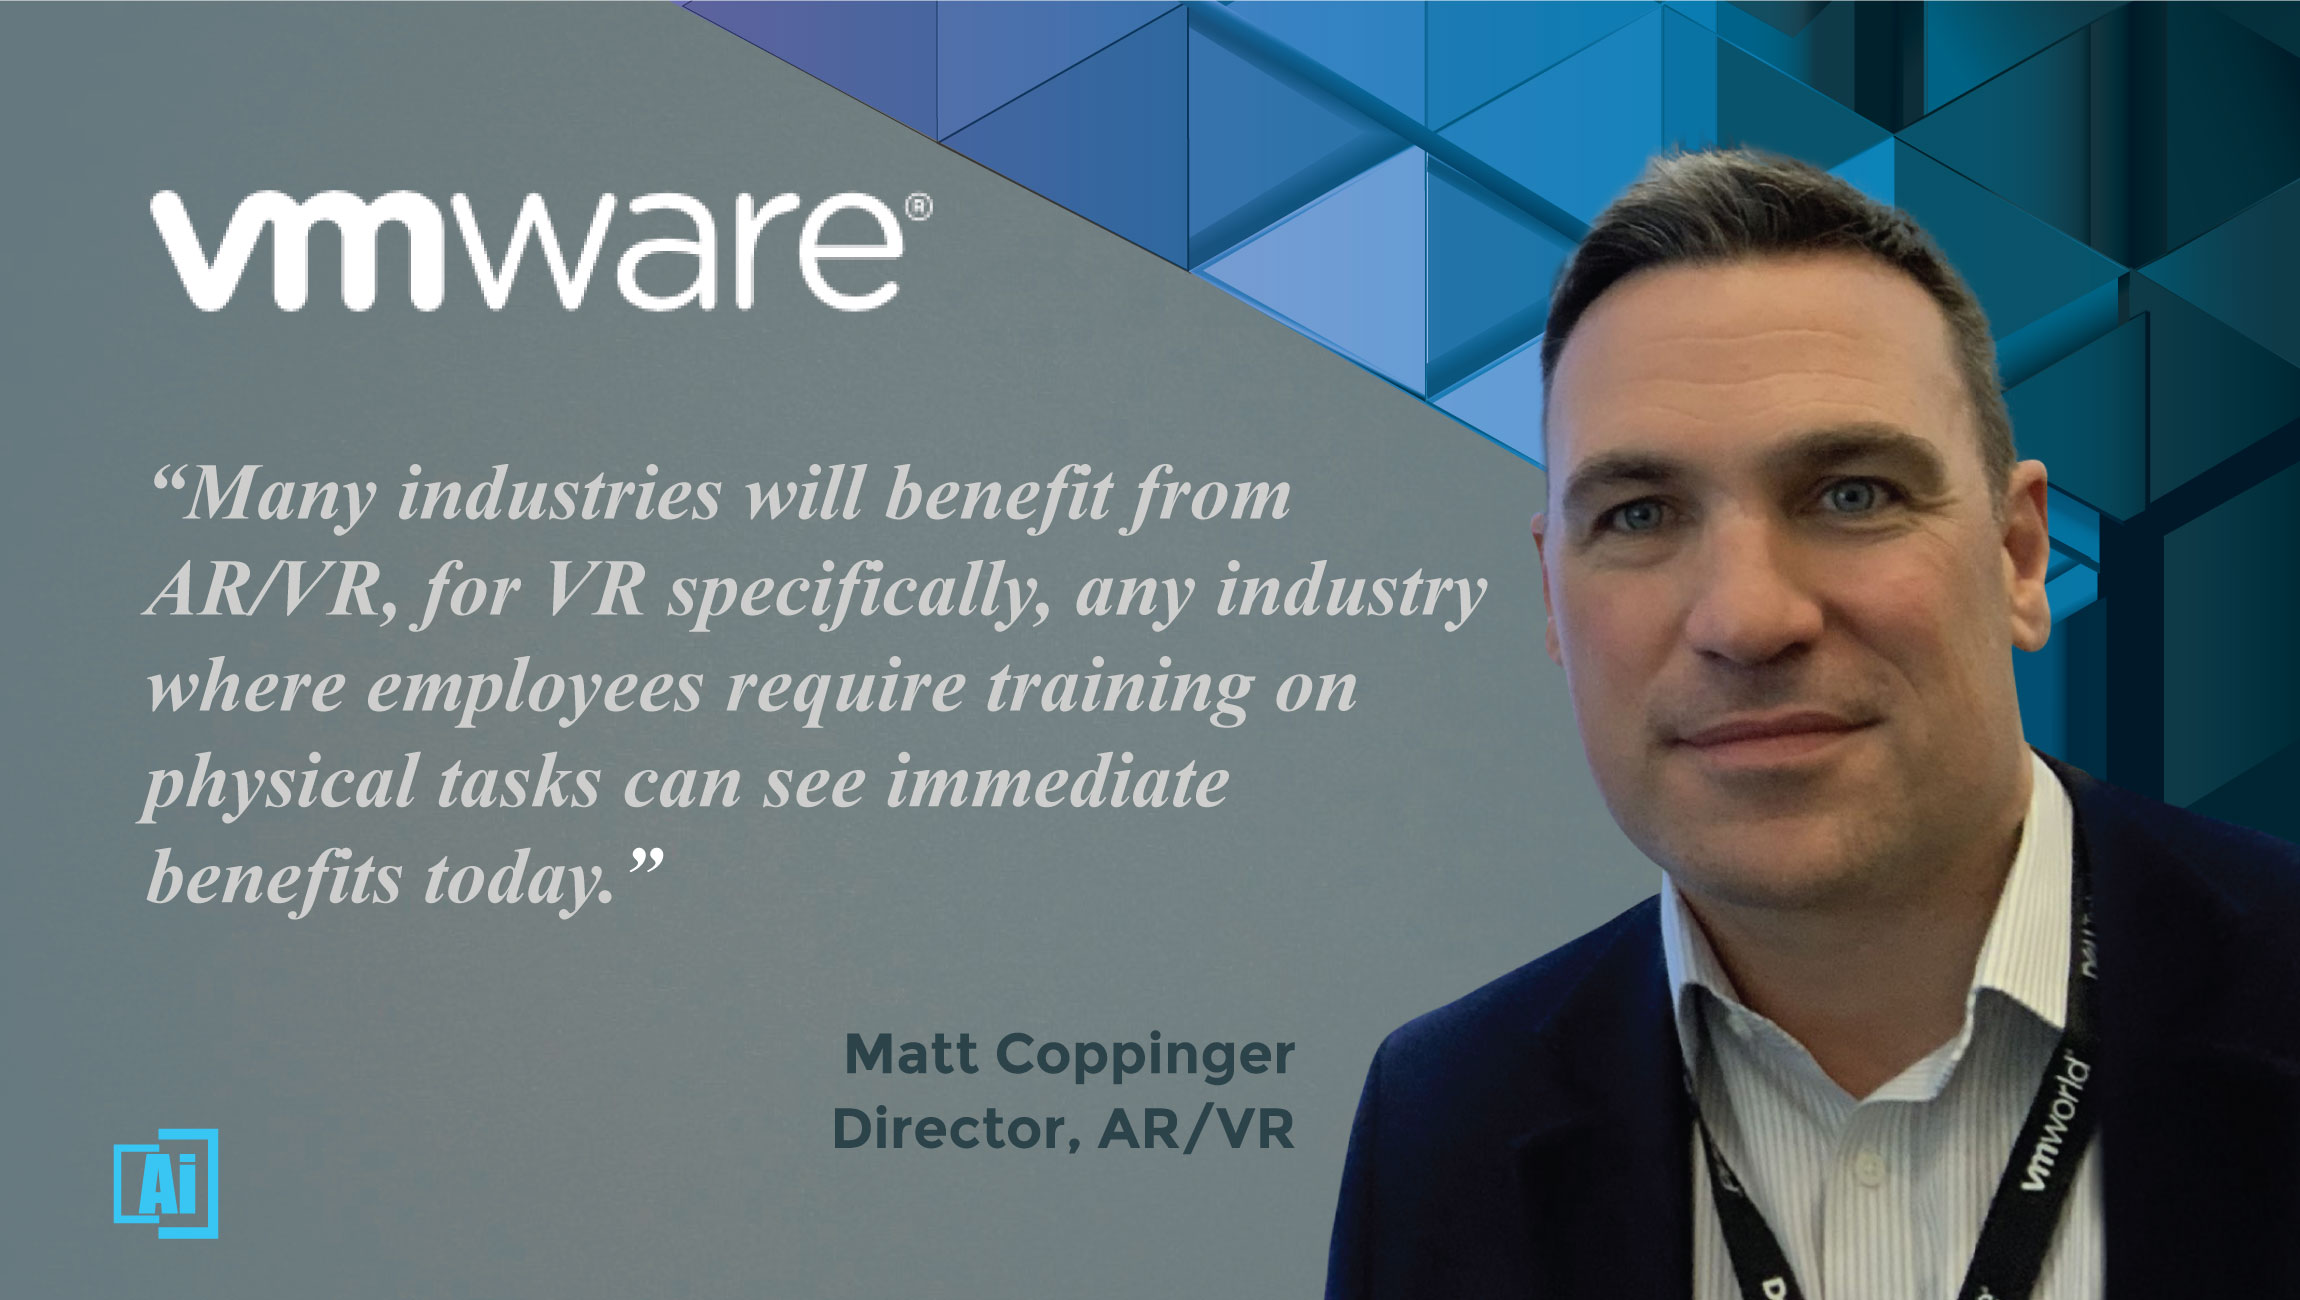 AiThority Interview with Matt Coppinger, Director AR/VR at VMware - cue card quotes